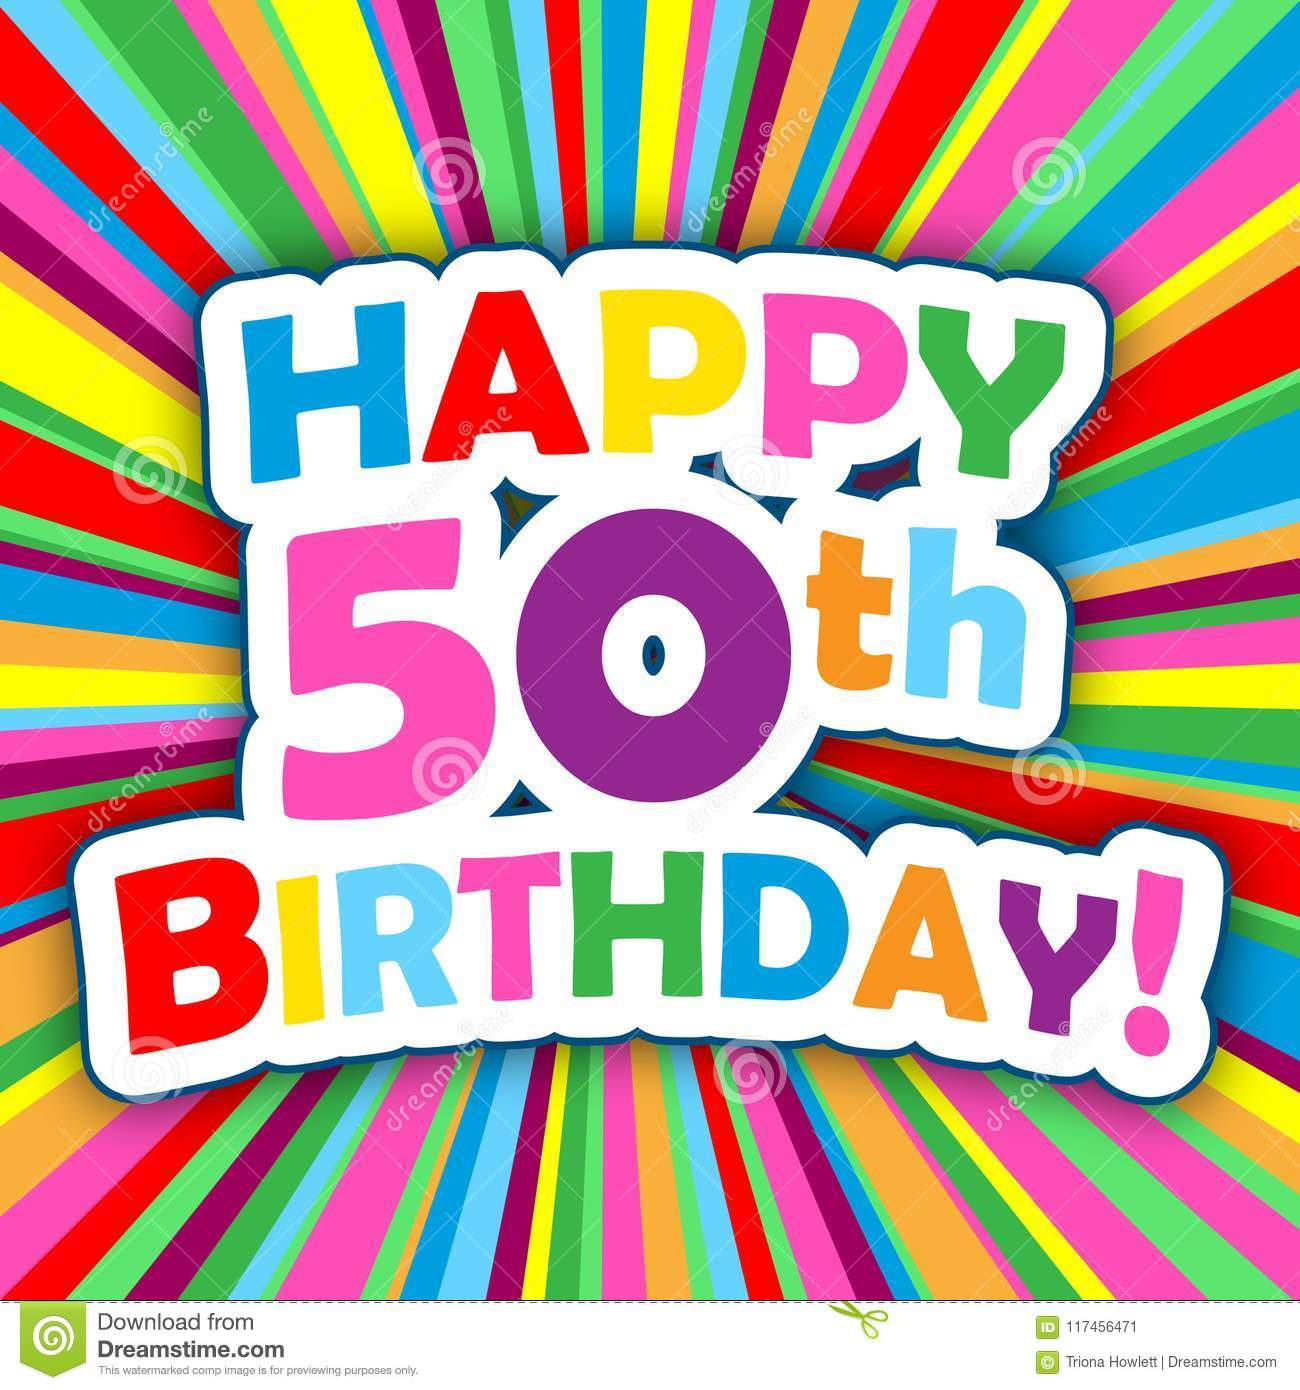 Happy 50th Birthday Card On Colorful Vector Background Stock Illustration Illustration Of Friends Card 117456471